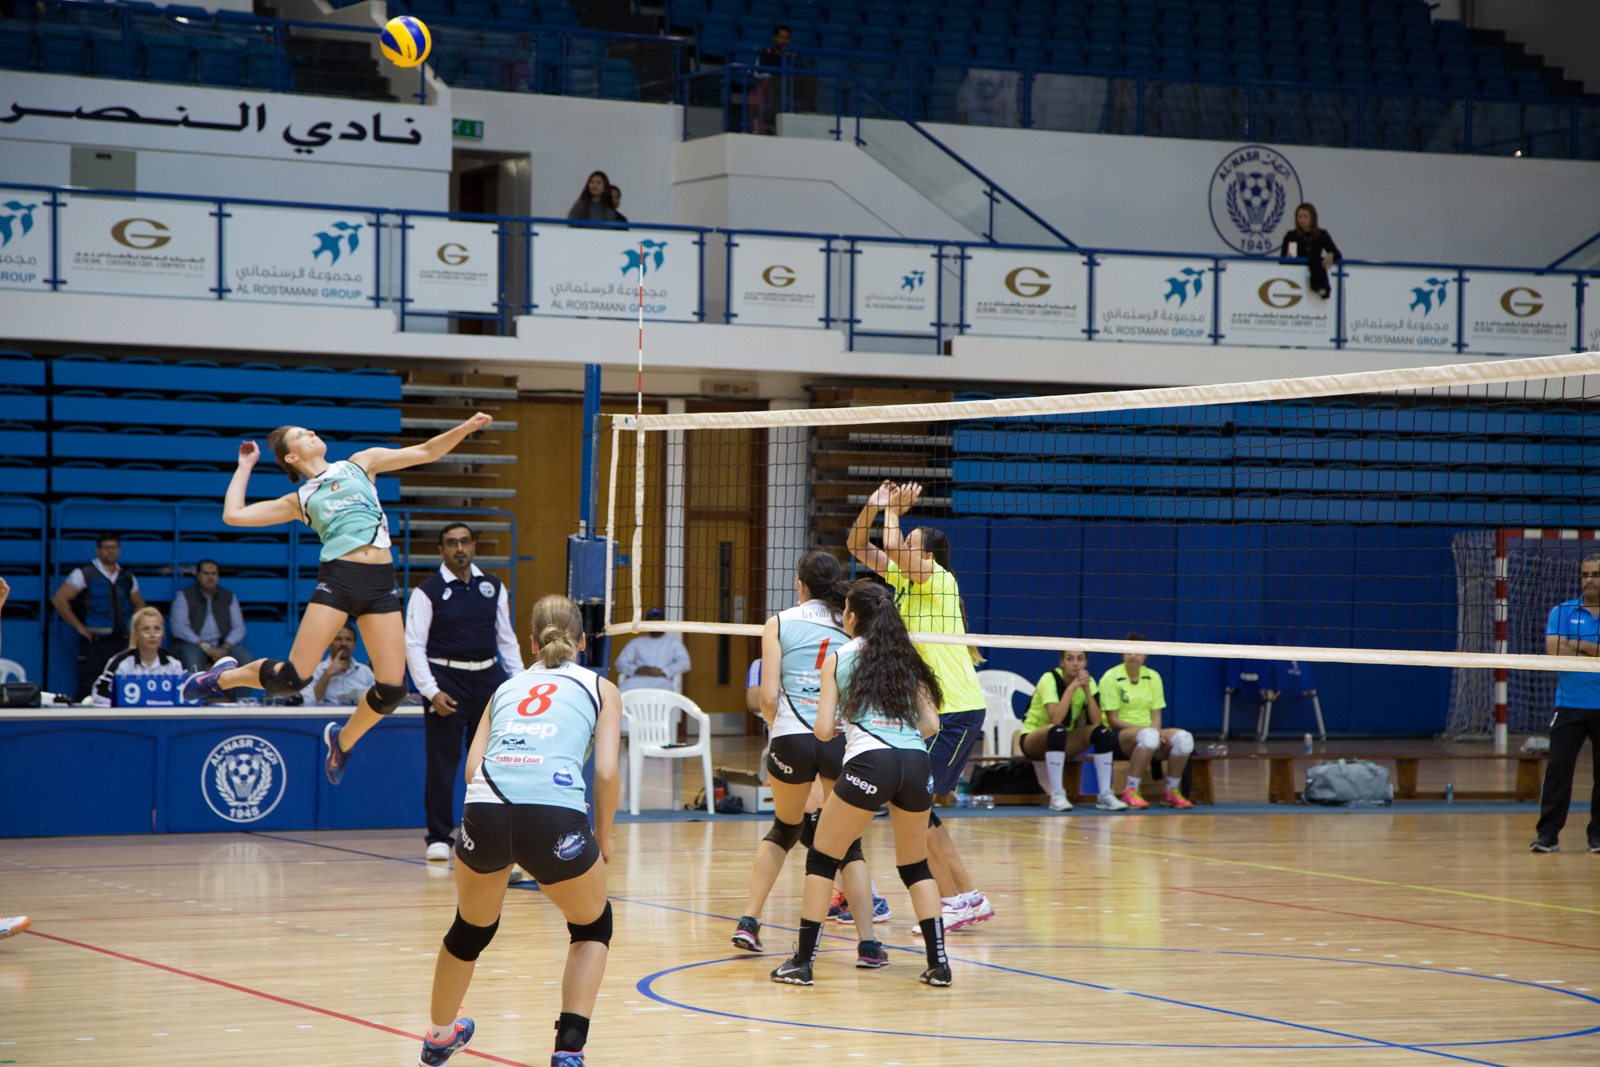 Esperia VS Skydive | Volleyball club and academy | Esperia